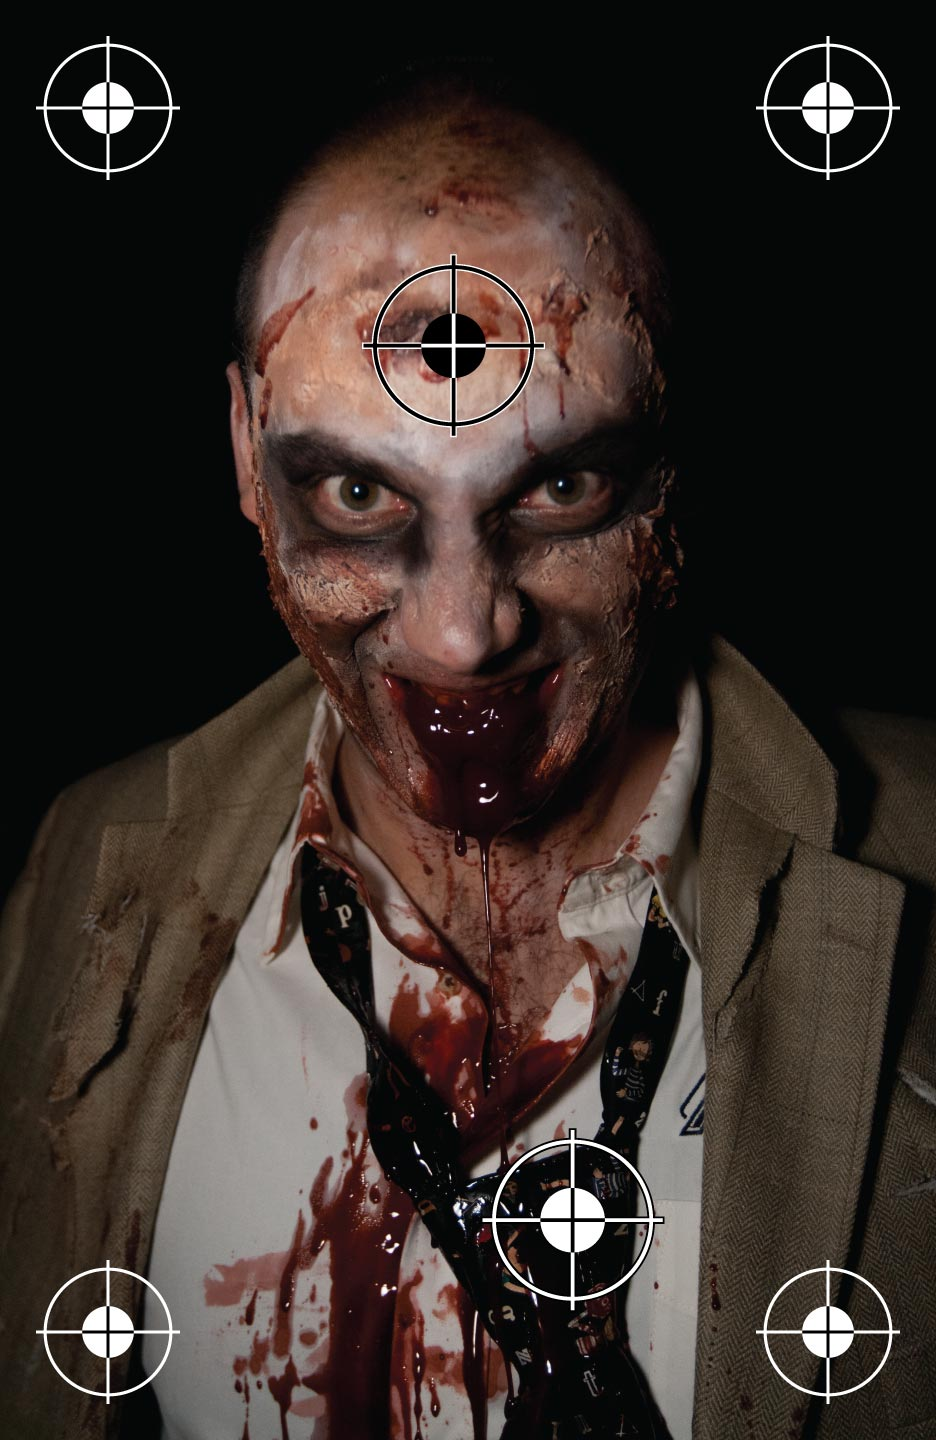 Realistic Zombie Shooting Target at PhotosAndFun.com